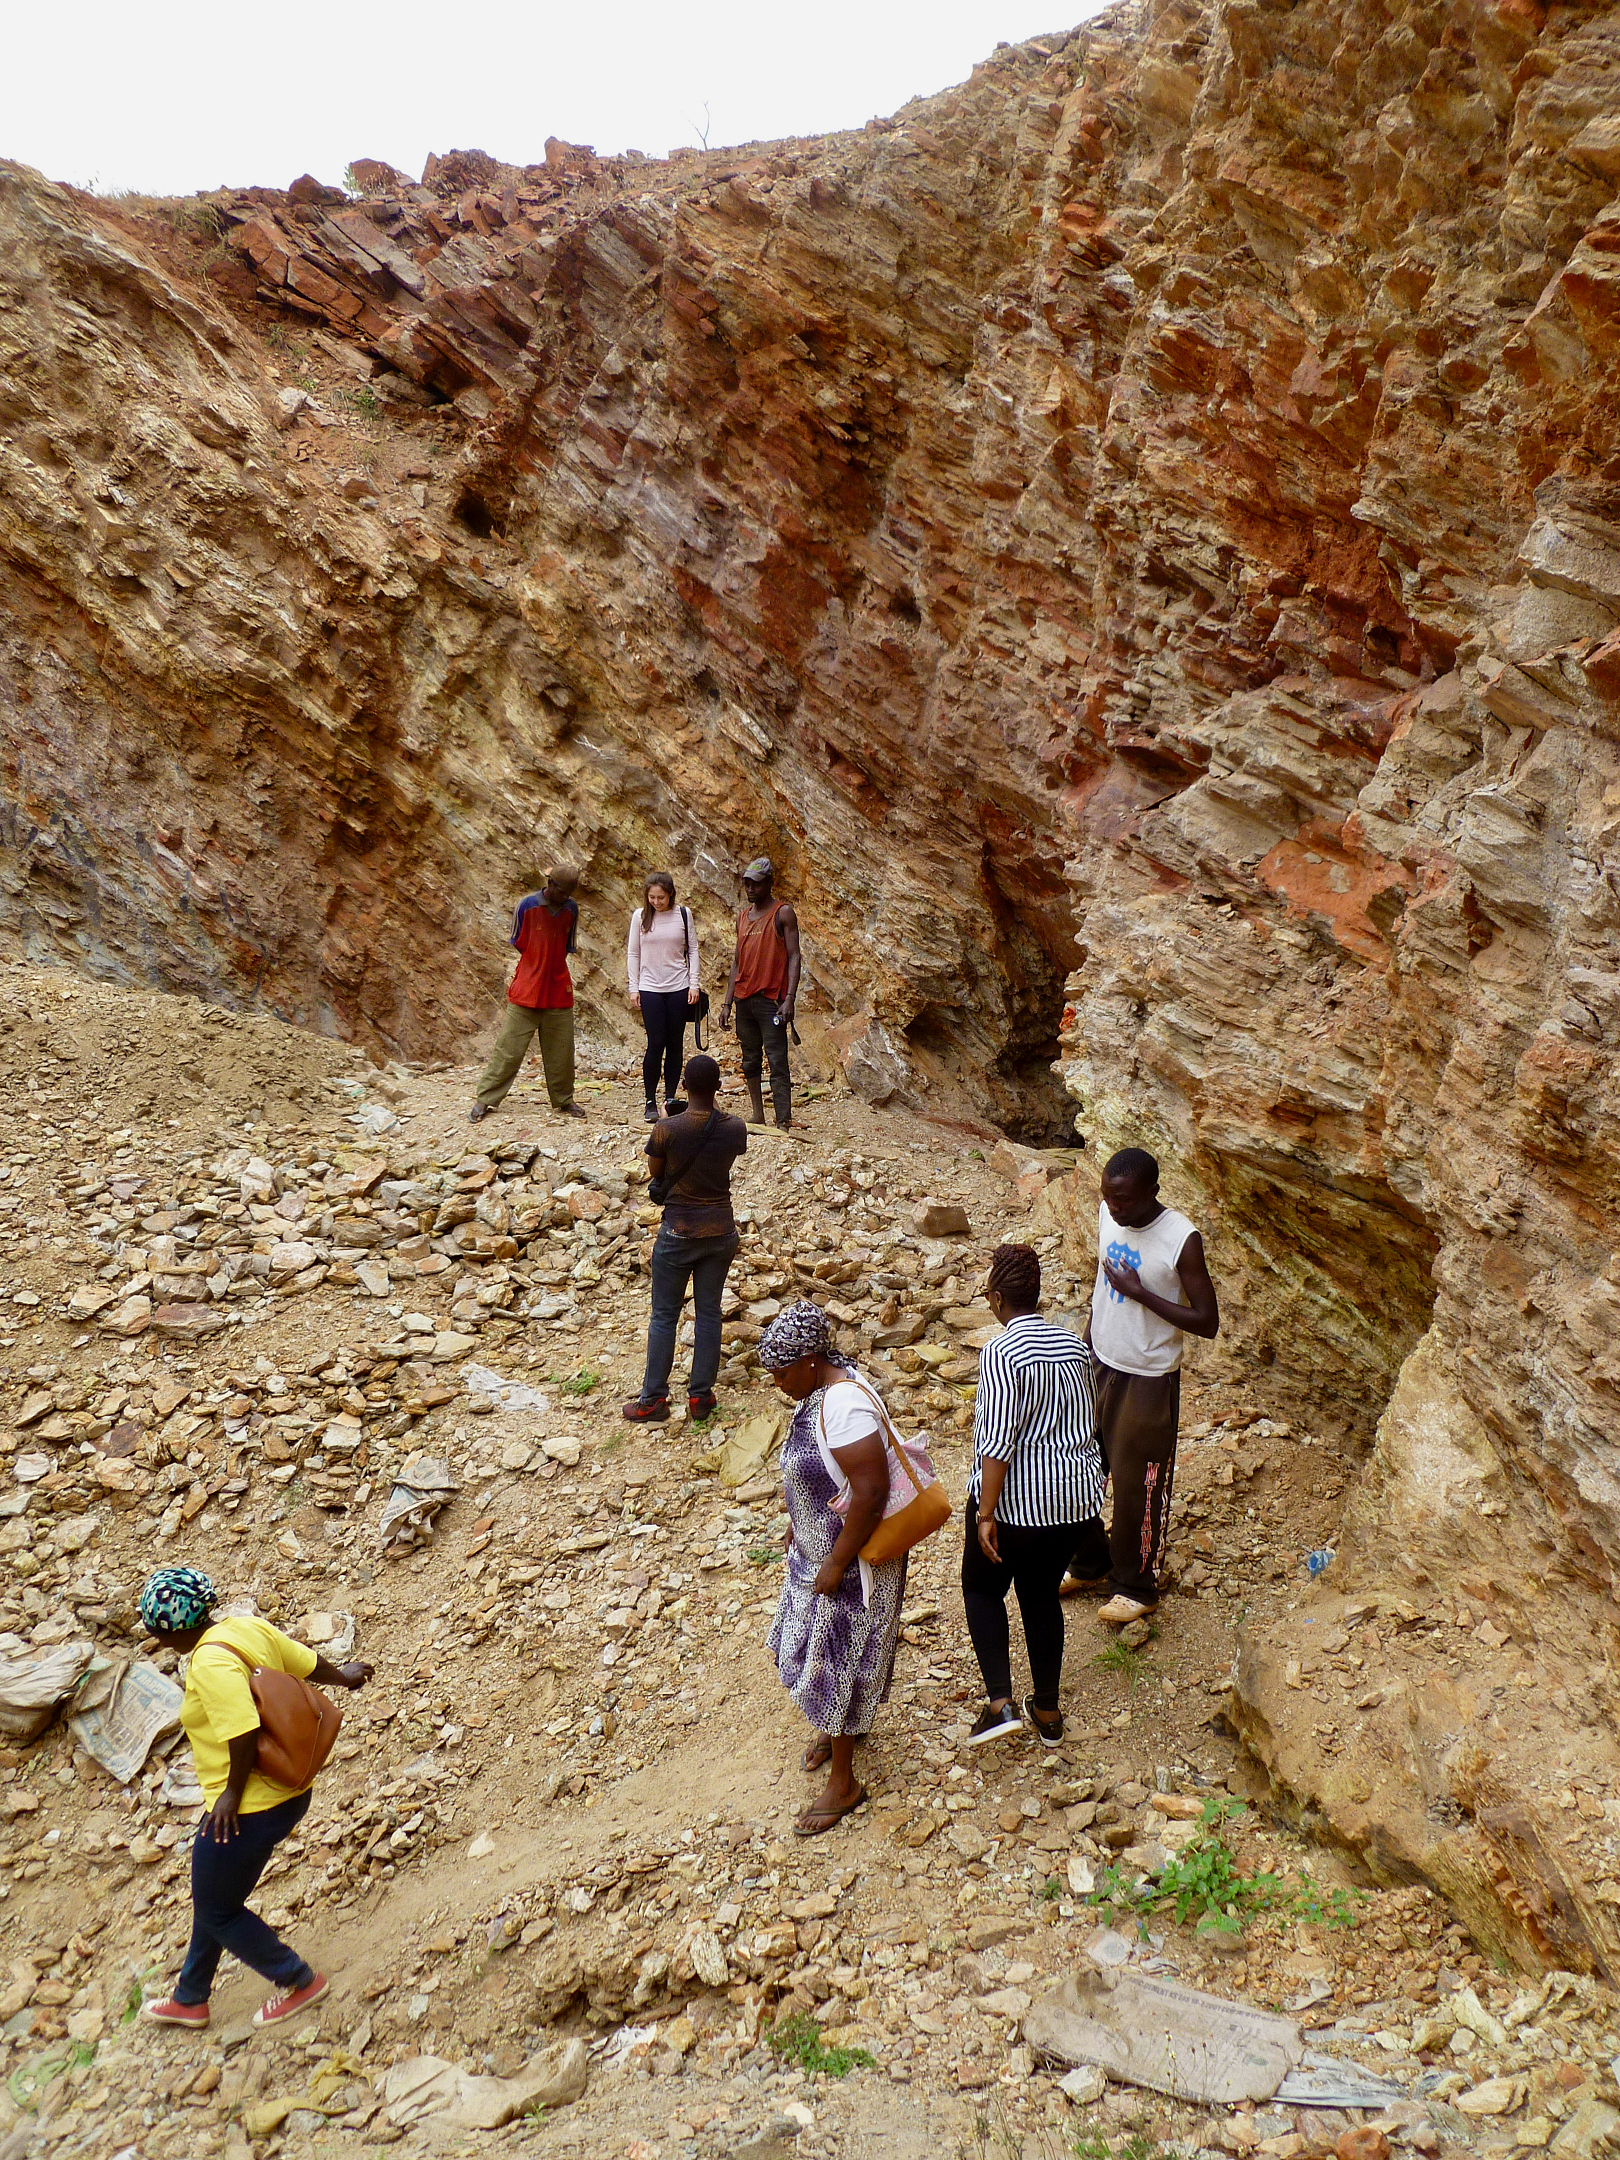 Exploring ASM site two with diggers, miners and gemmologists